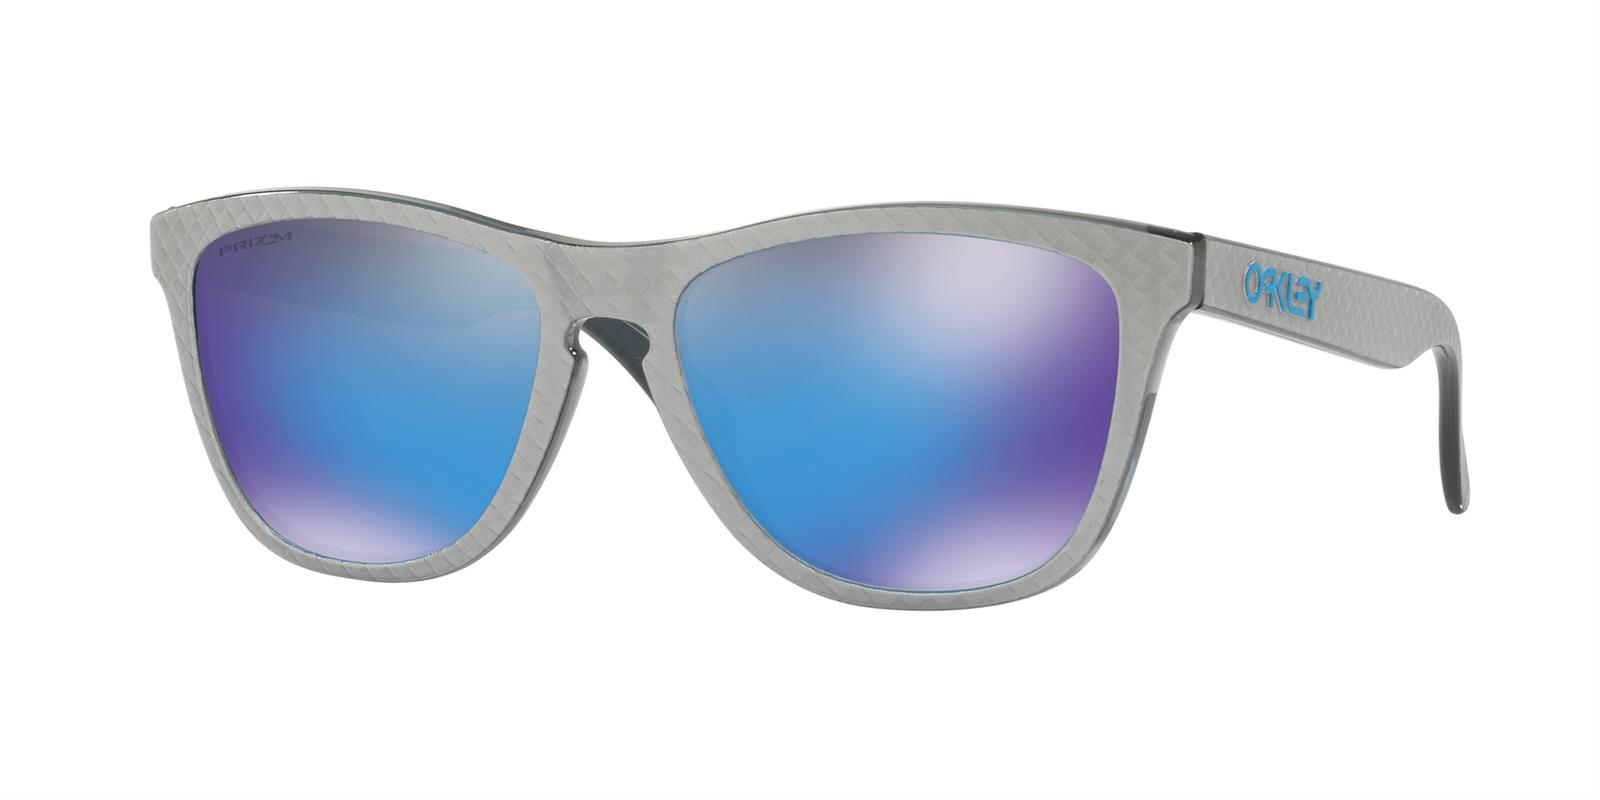 d1c750c527ed Oakley Frogskins Prizm Checkbox Collection Sunglasses OO9013-C055 - Free  Shipping on Orders Over  99 at Summit Racing